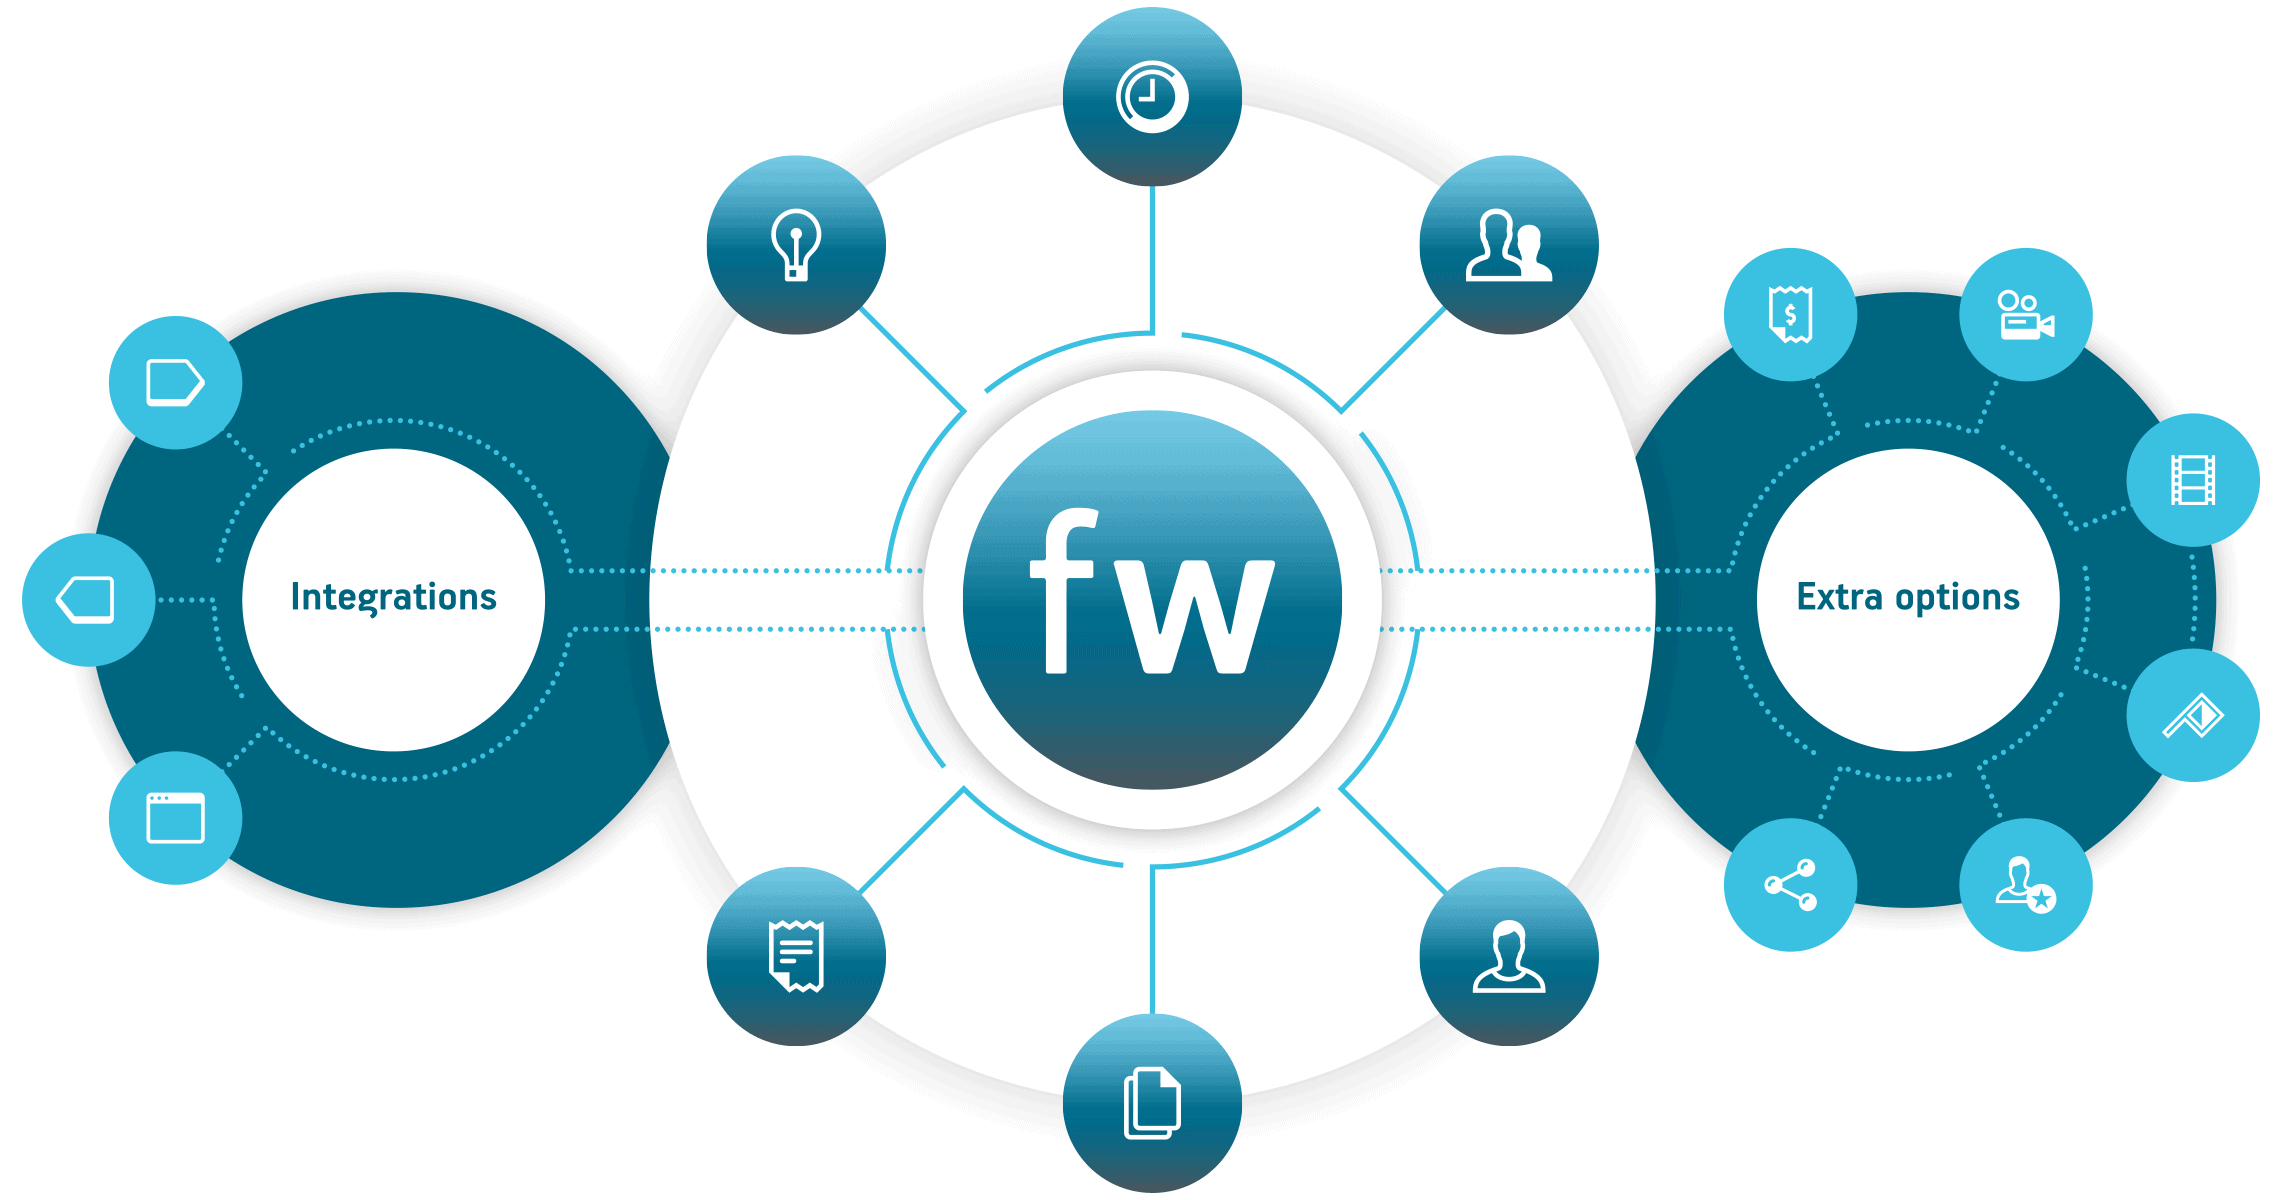 farmerswife project management scheduling software powerful all in one toolbox integrations and extra options for media professionals